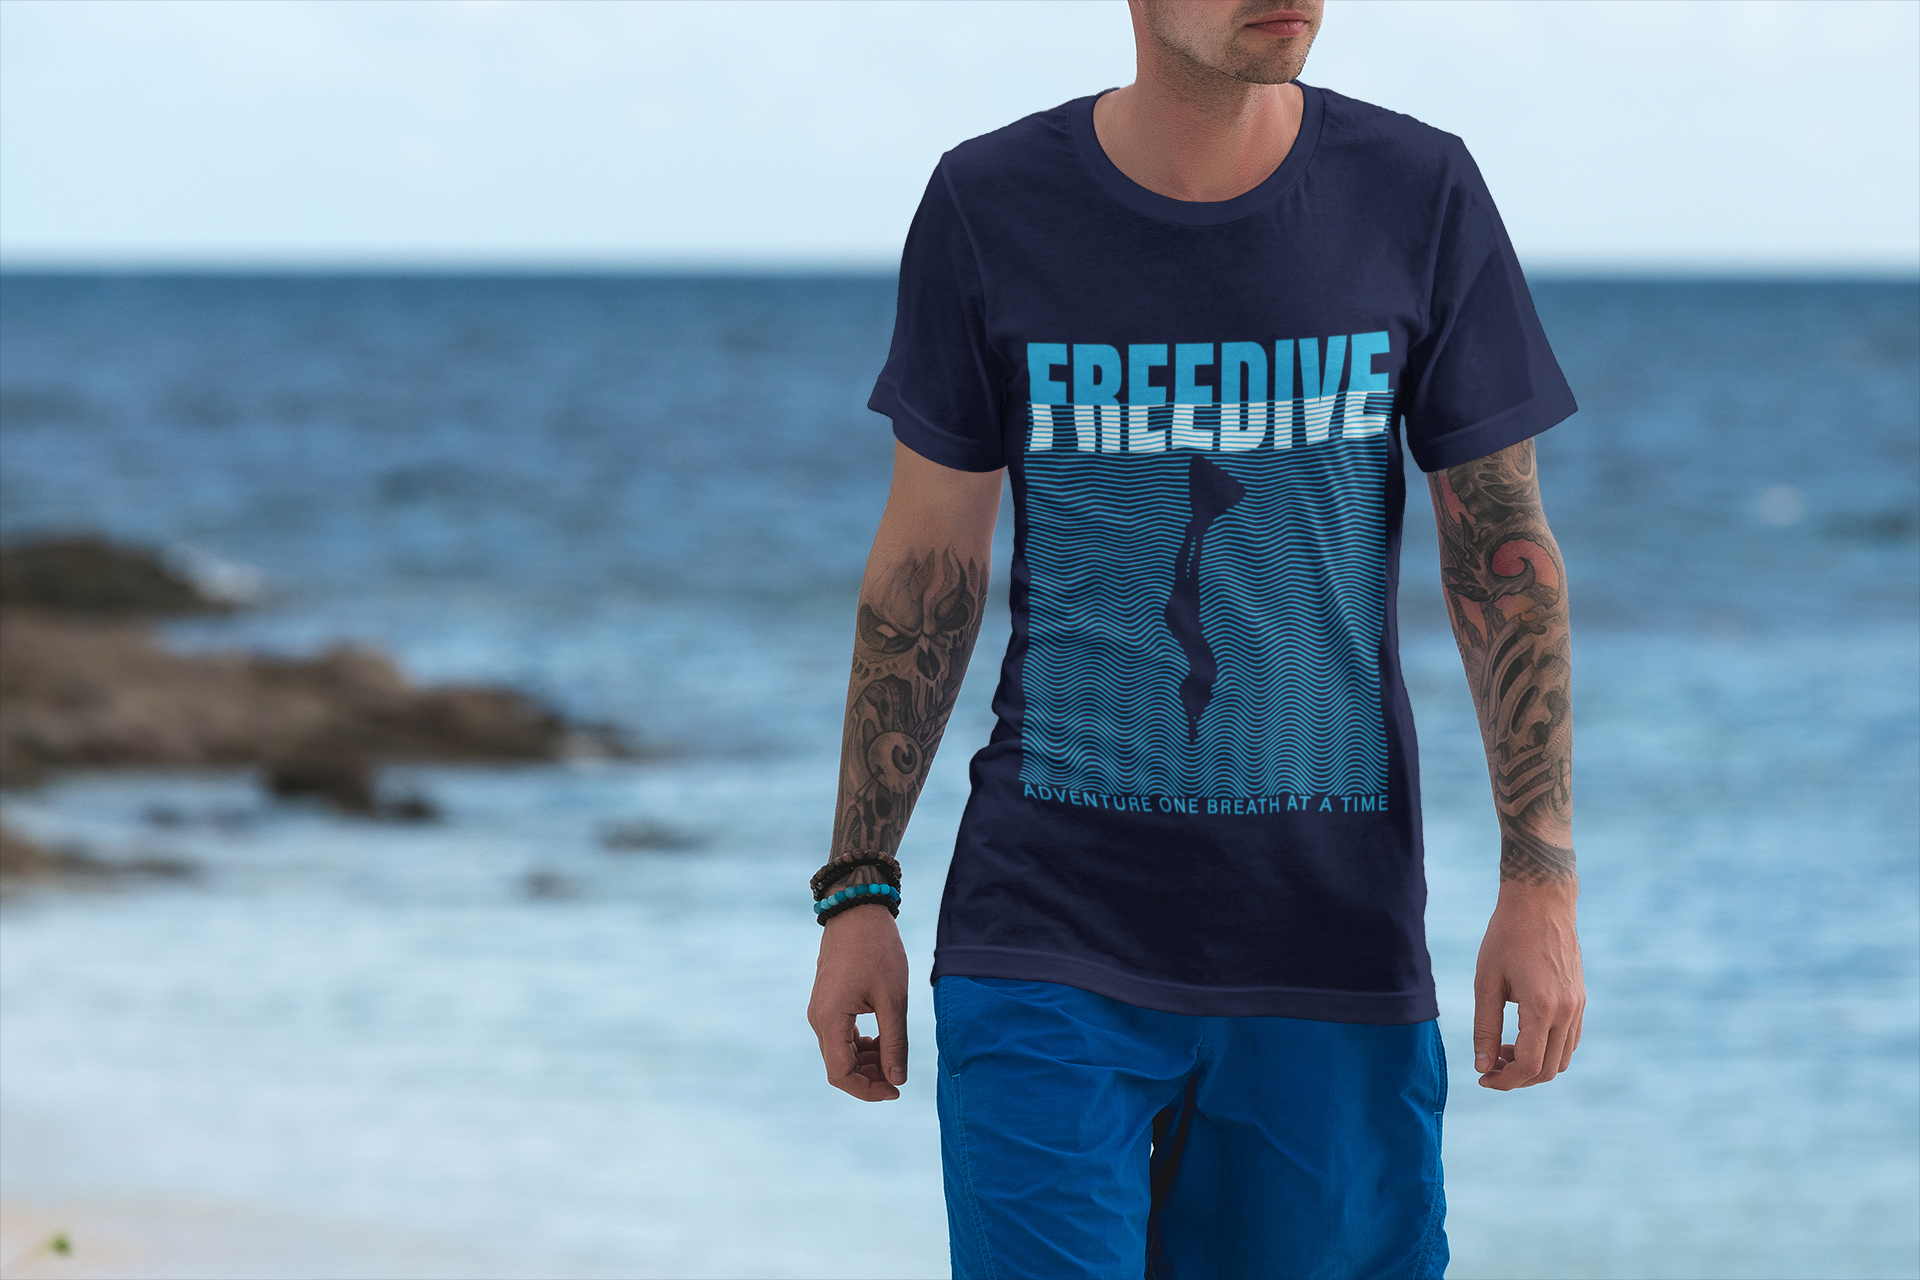 mockup-of-a-man-wearing-a-t-shirt-featuring-the-sea-in-the-background-3325-el1.png